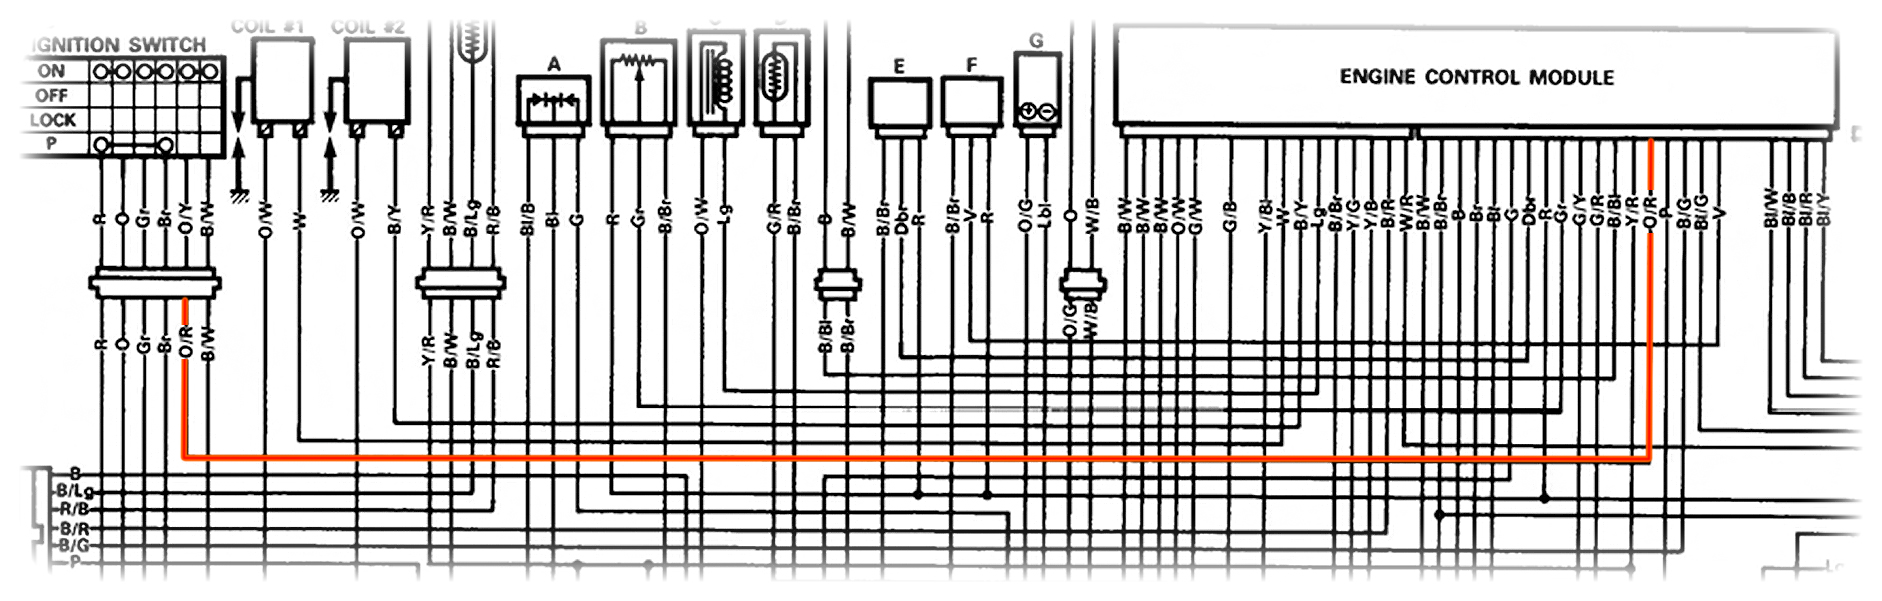 hight resolution of 97 tl1000s wiring diagram wiring diagram yer 97 tl1000s wiring diagram tl1000s wiring diagram